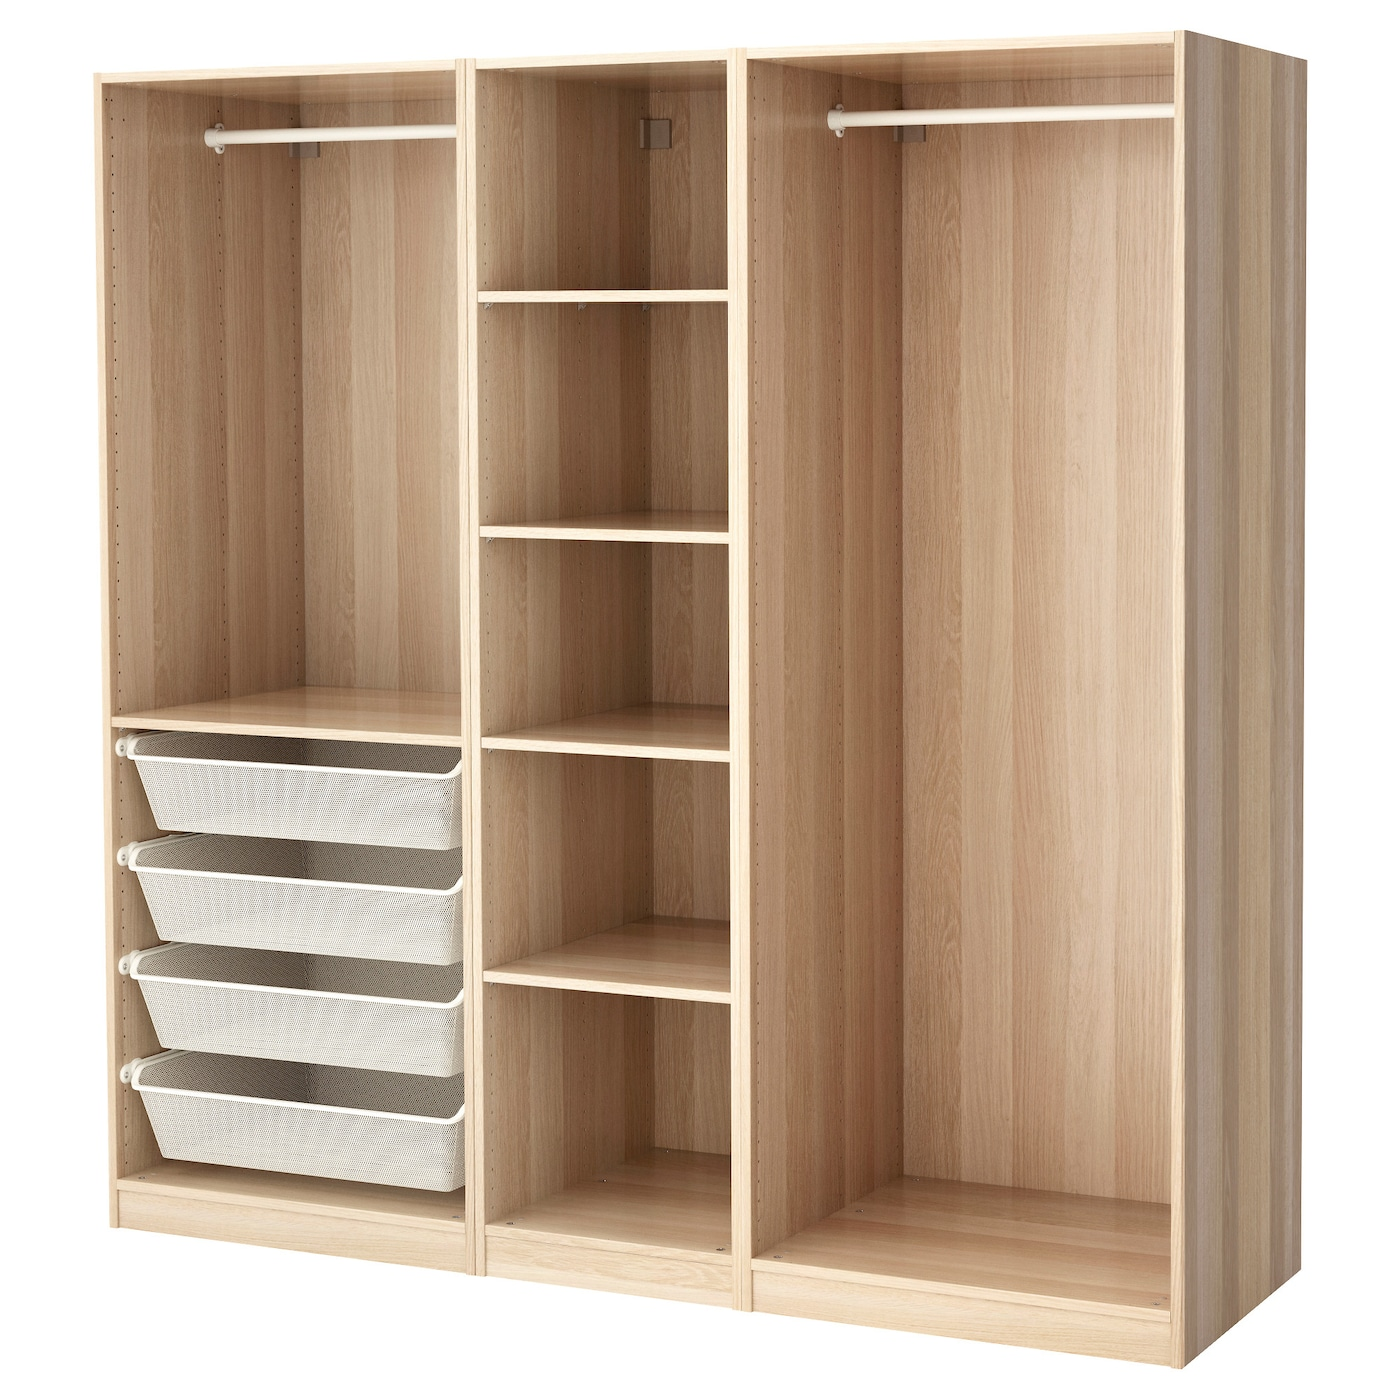 Pax wardrobe white stained oak effect 200x58x201 cm ikea for Armoire couloir design